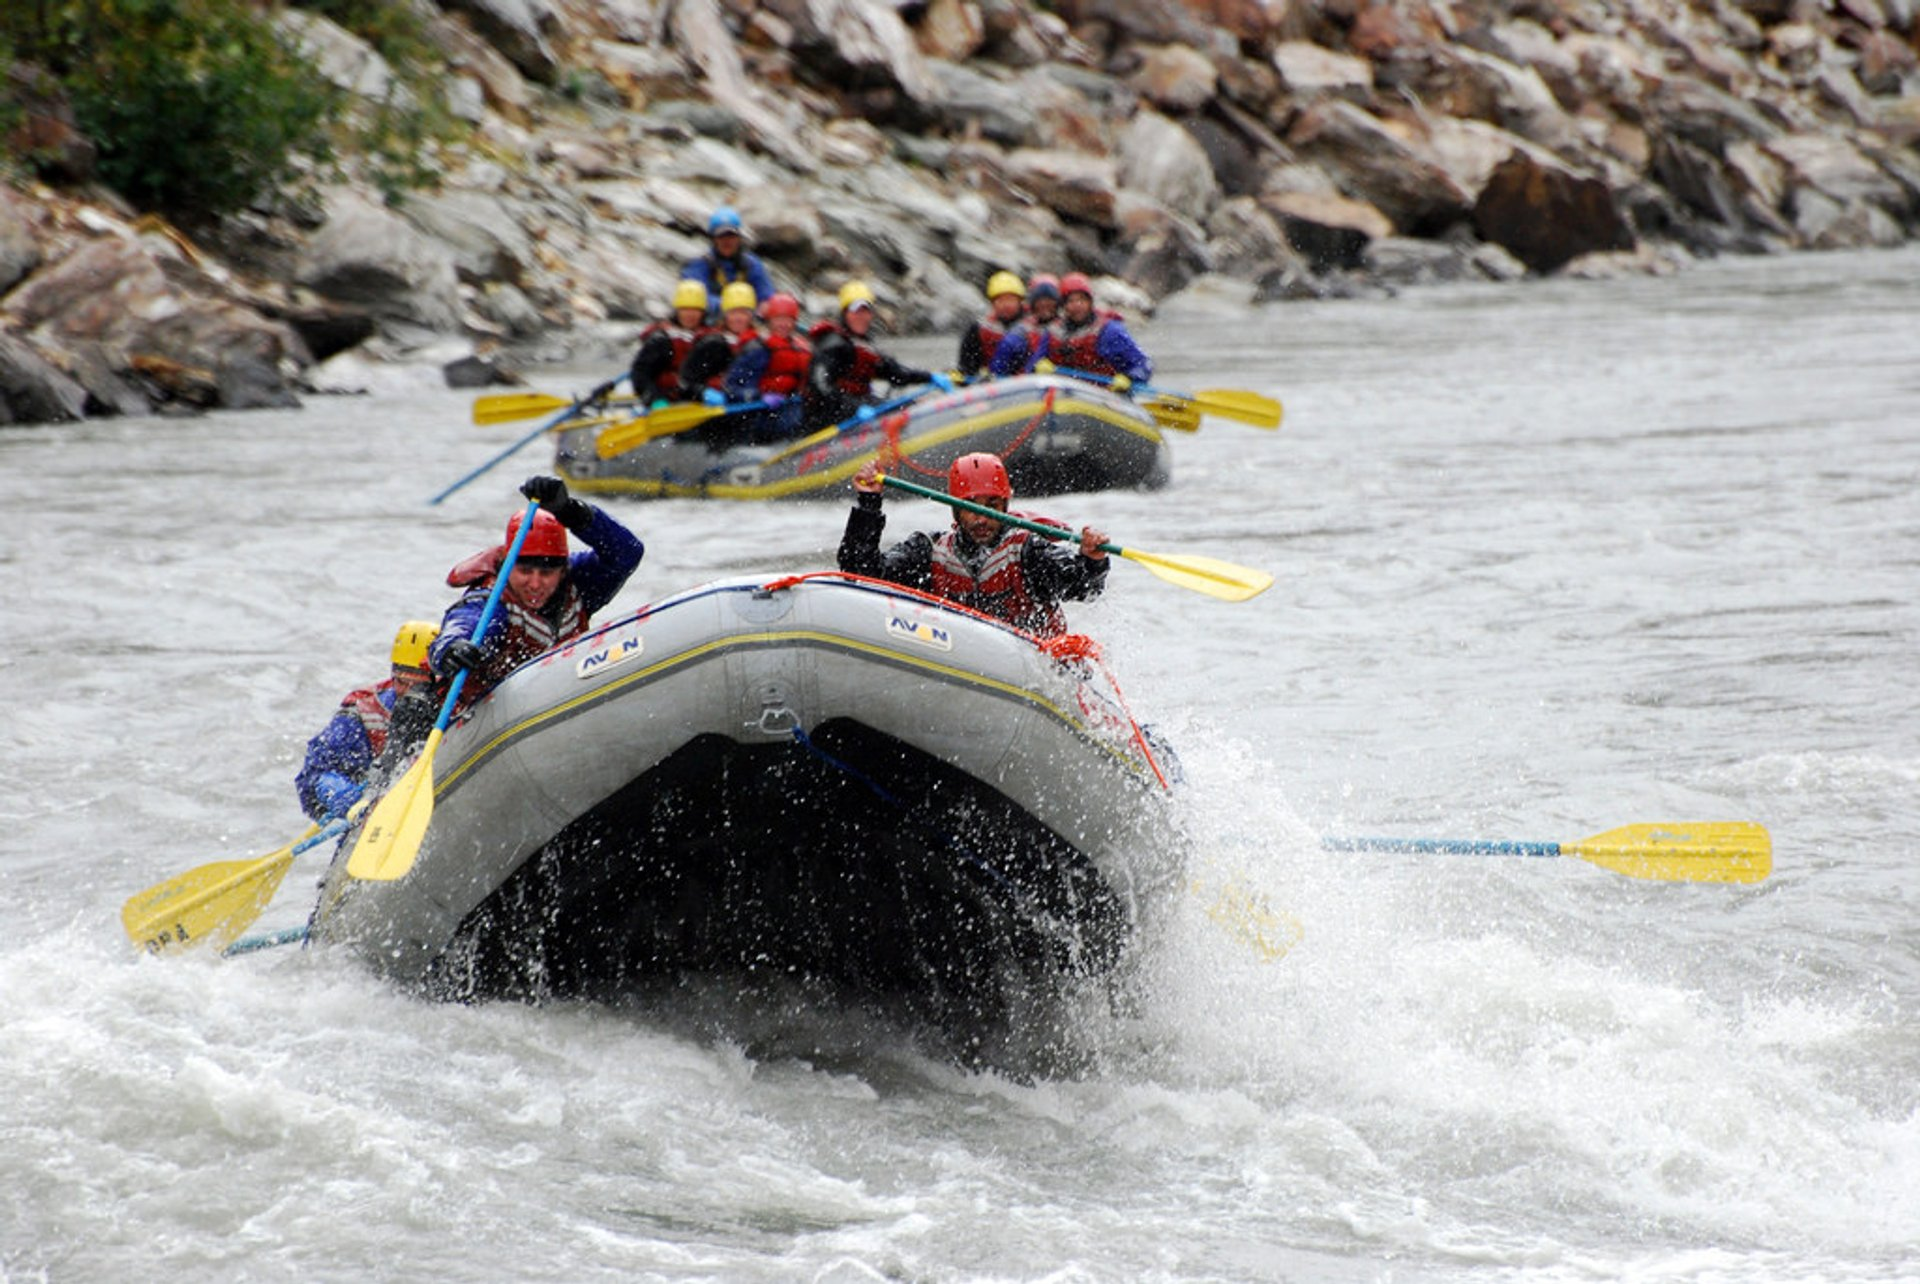 Rafting in Alaska 2019 - Best Time